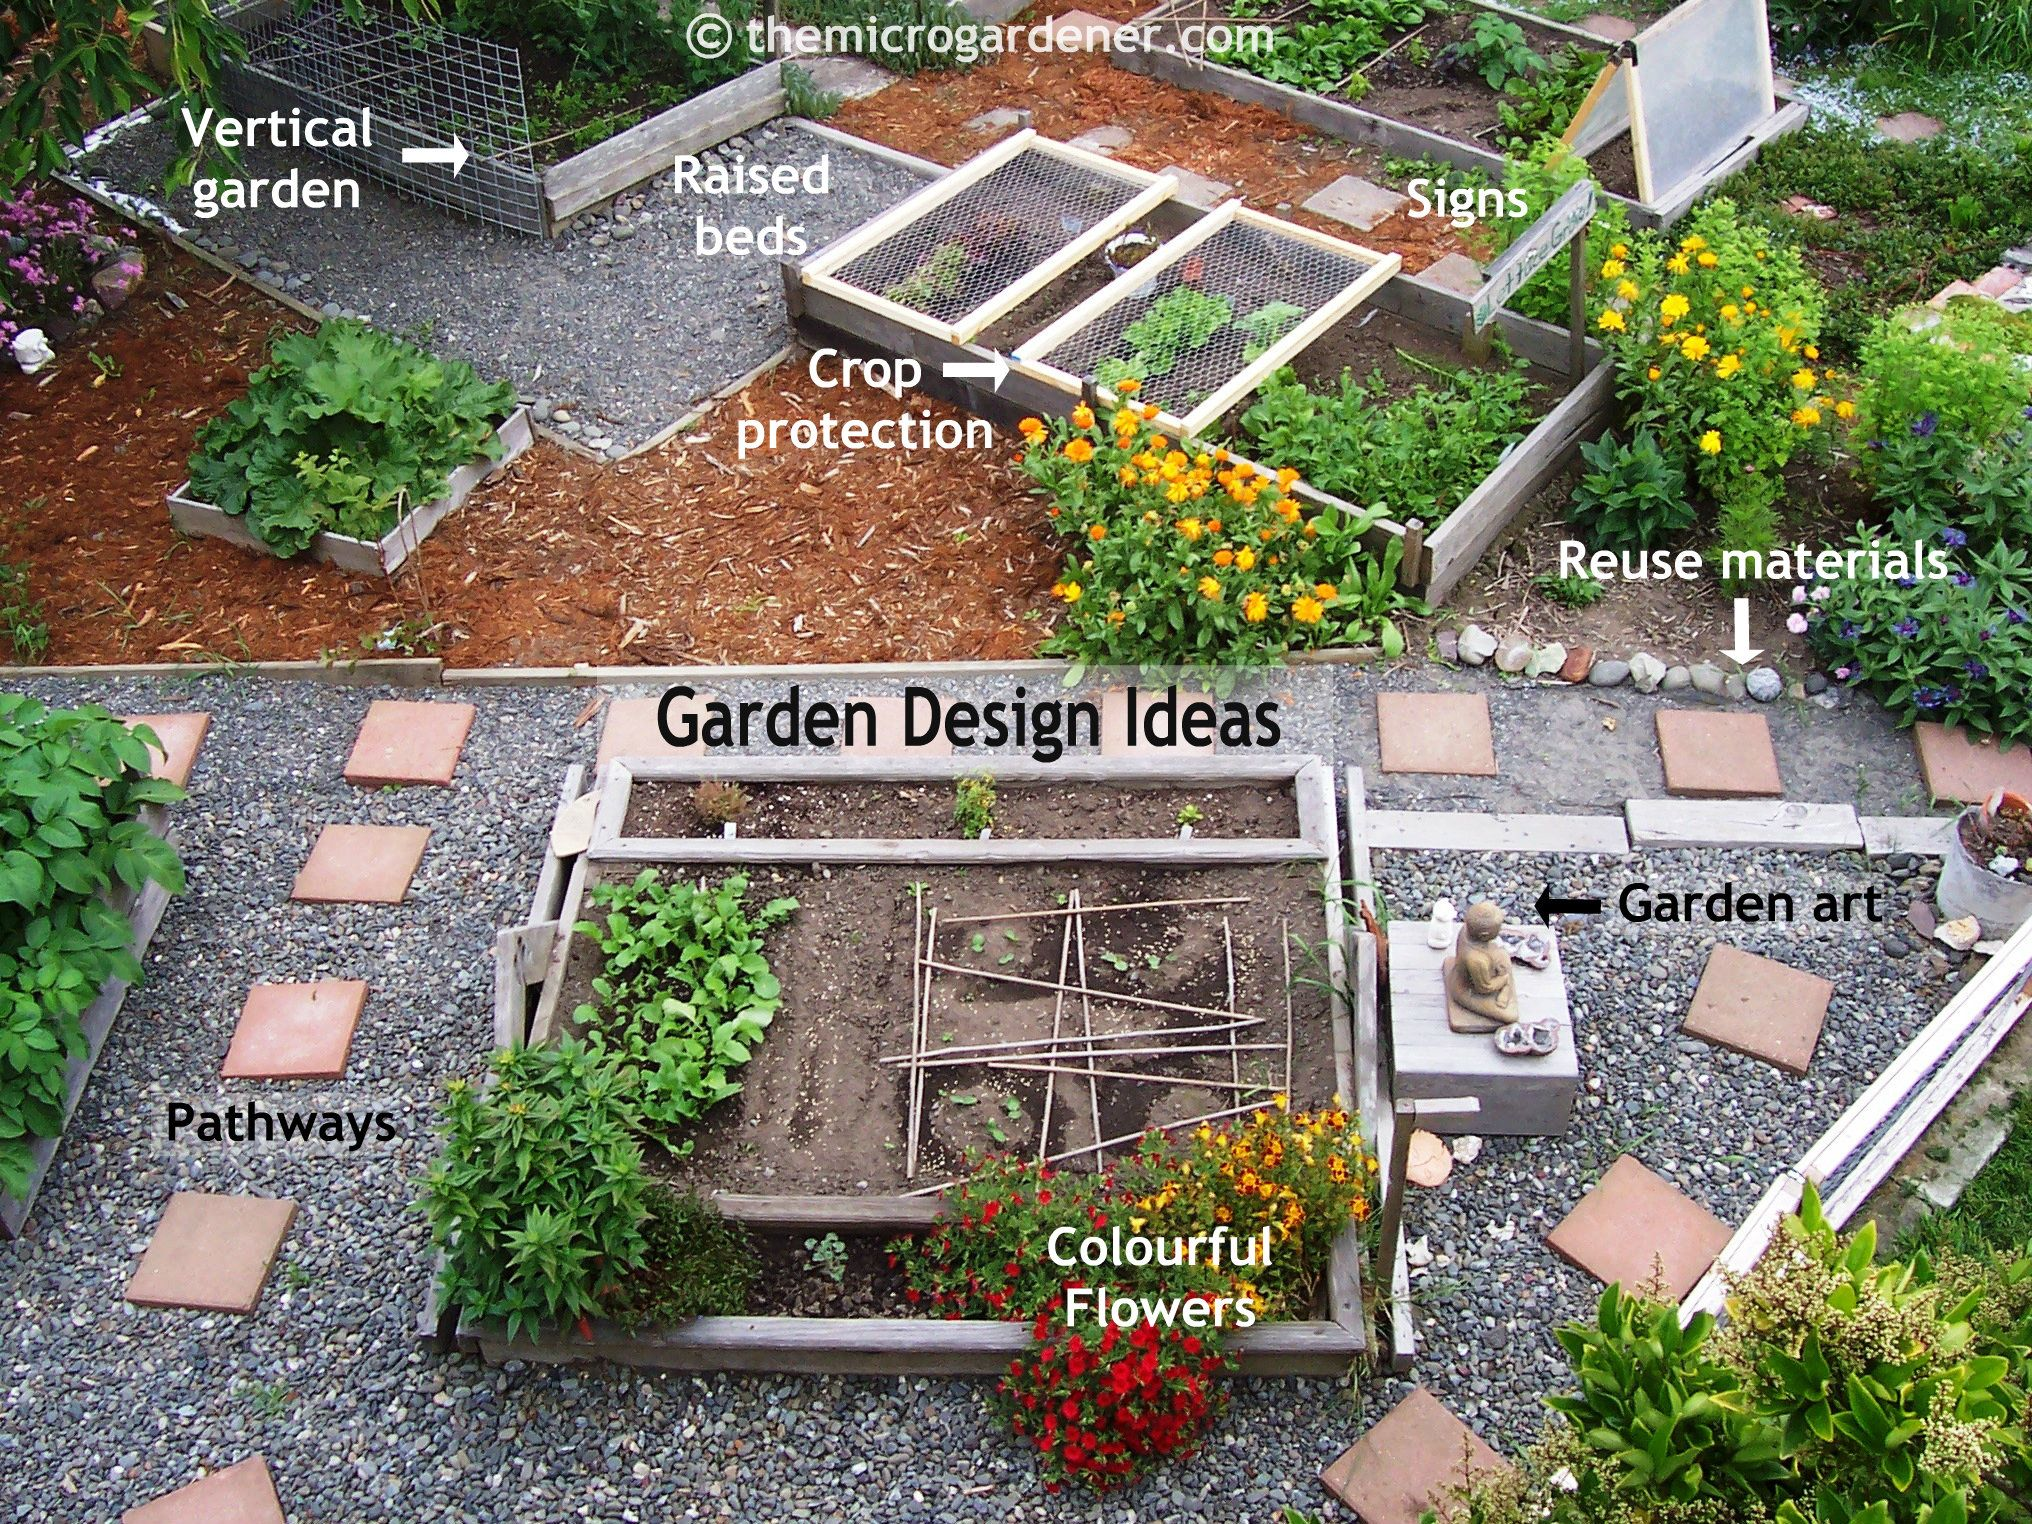 Small garden design ideas on pinterest vertical gardens for Small home garden plans